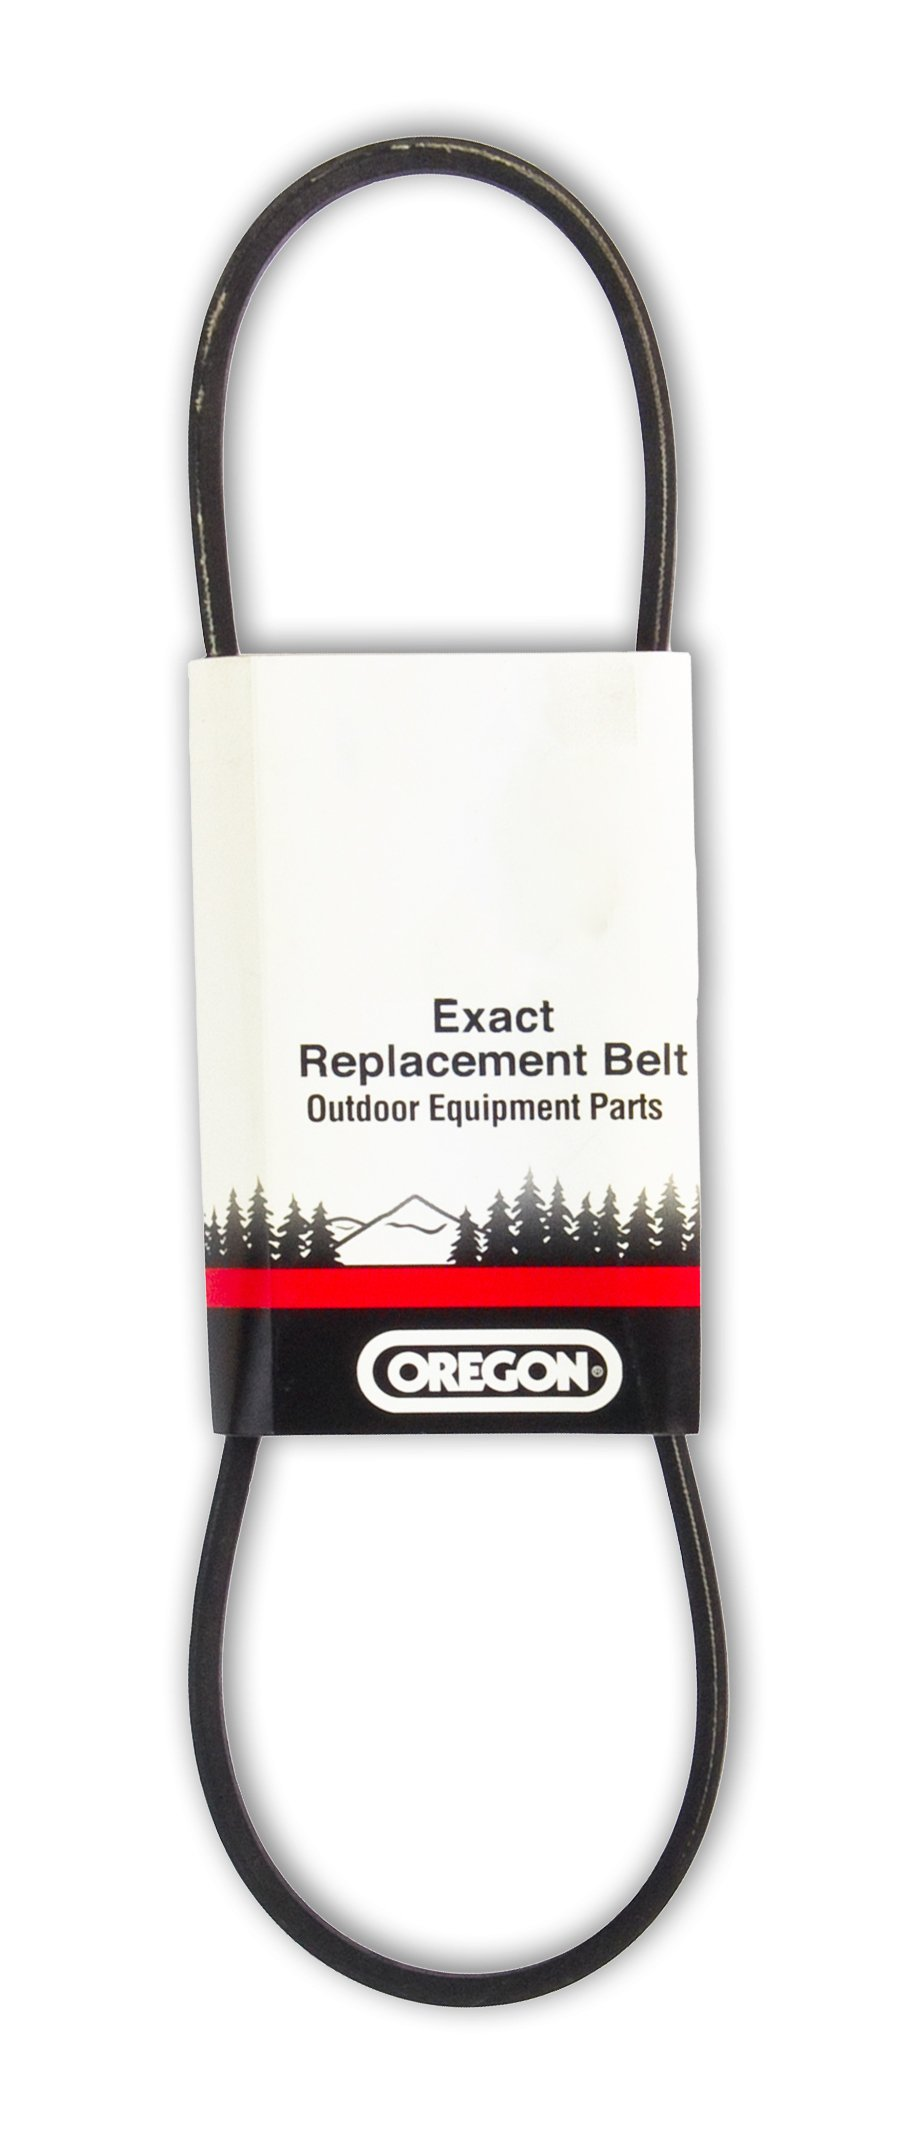 Oregon 75-084 Replacement Belt for Ariens 72114, 1/2-inch x 34-1/2-inch